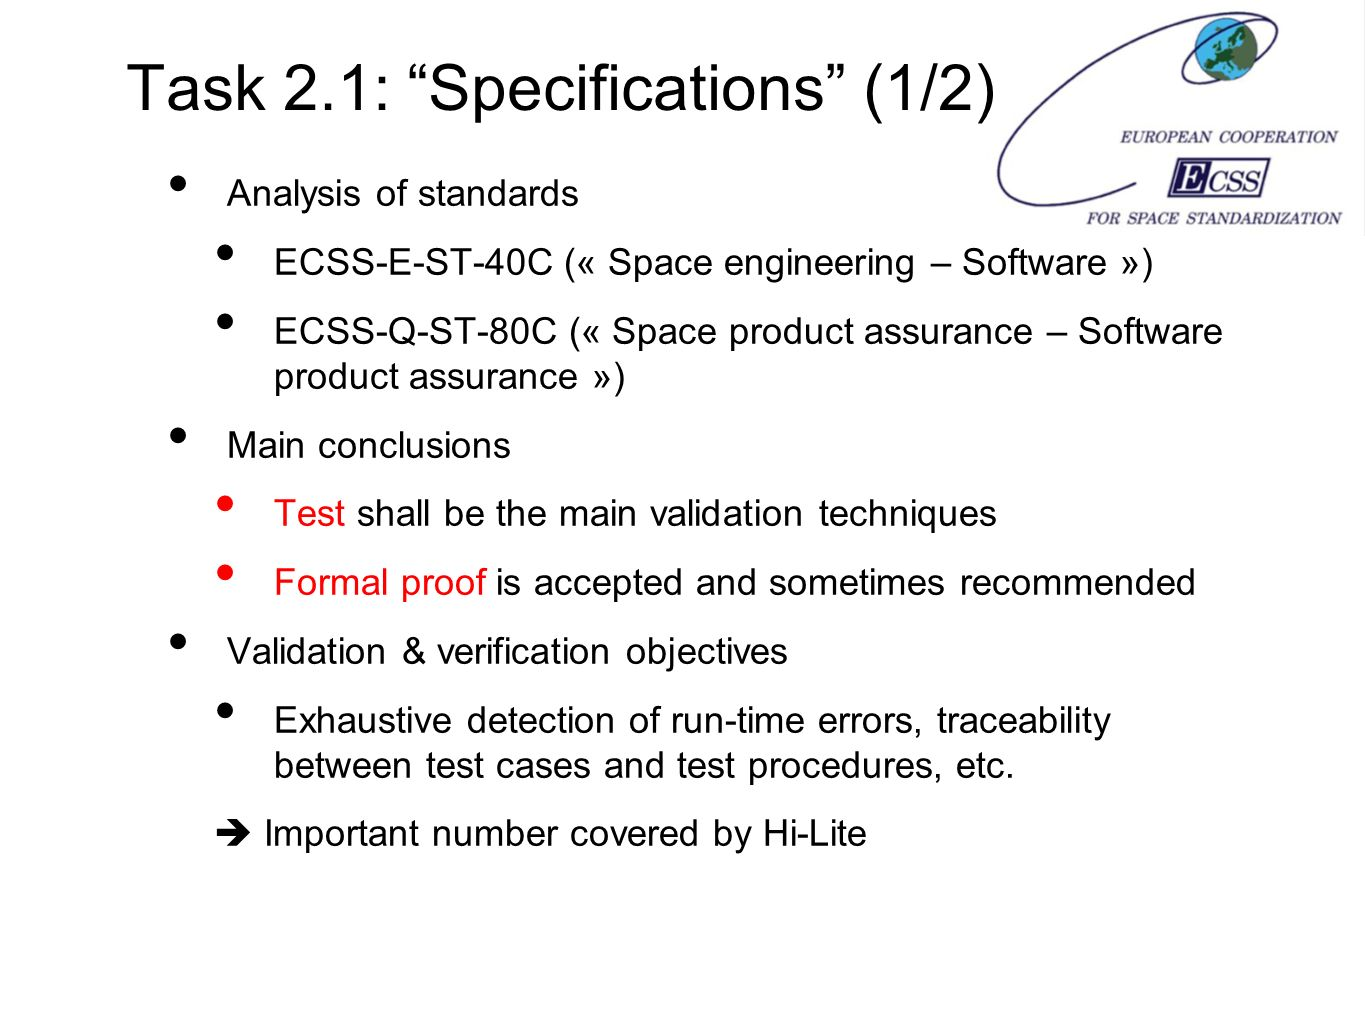 Task 2.1: Specifications (1/2)